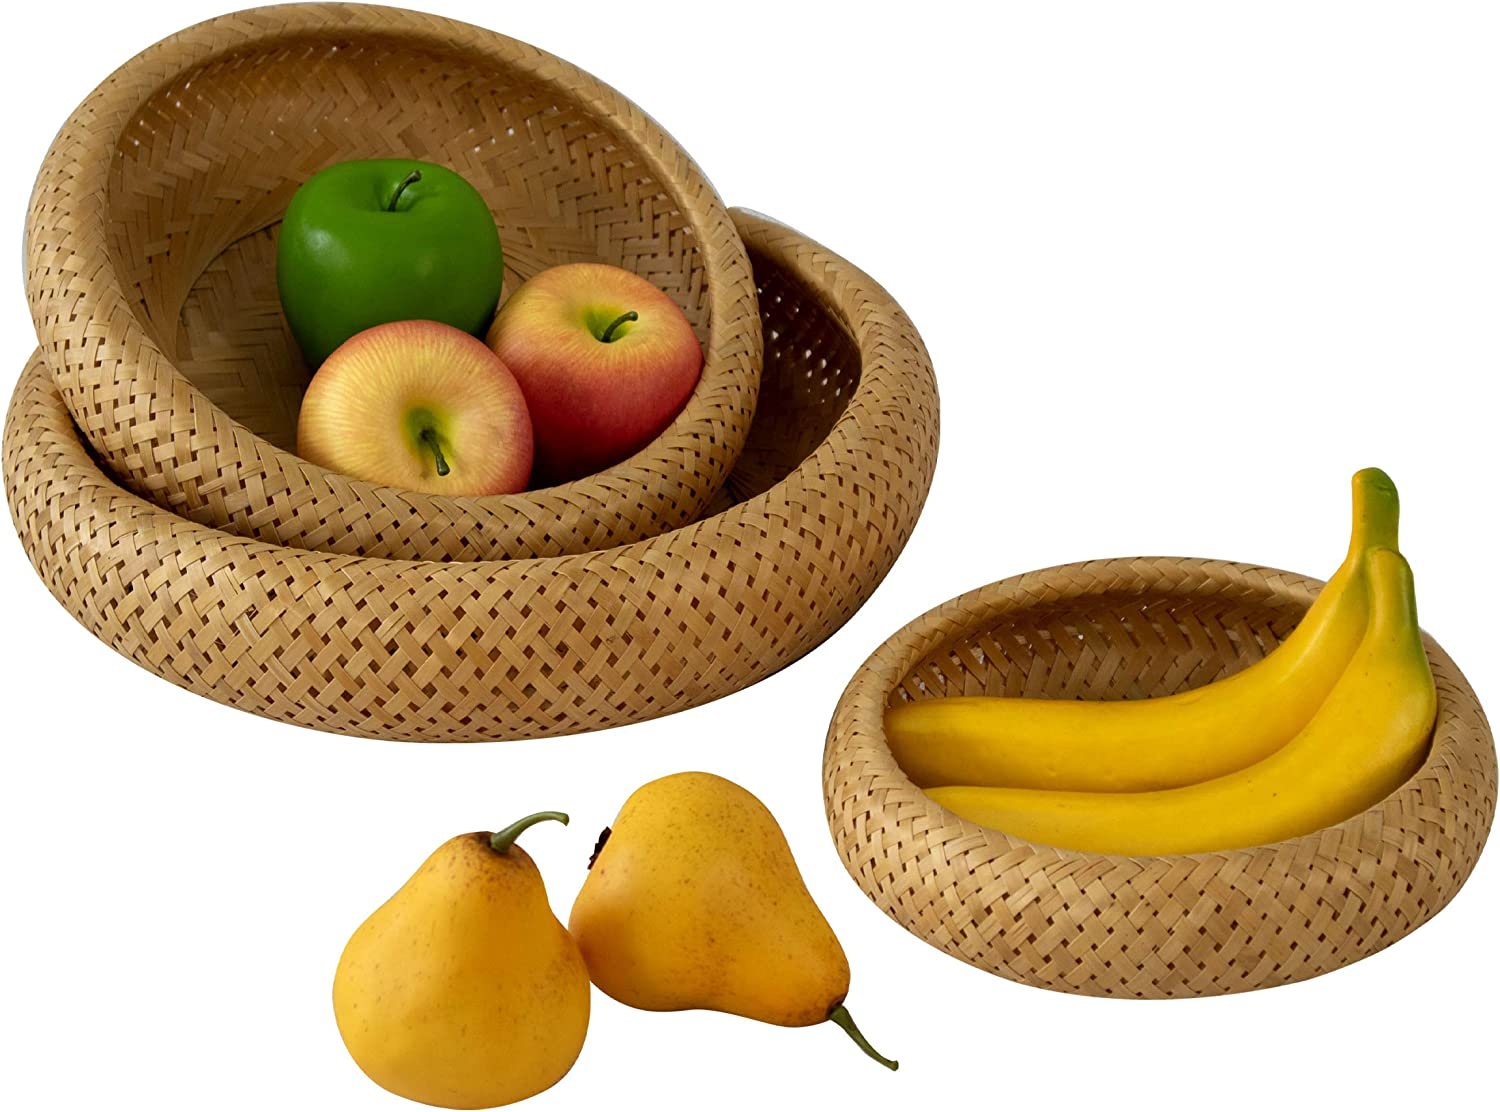 Bamboo Wicker Display Bowl - Hand Woven Shallow Fruit, Food, Bread Serving Basket | Rustic Key, Toy, Wallet, Entryway Table Storage Bowl| Circular Woven Decorative Straw Tray Basket (Set 3)